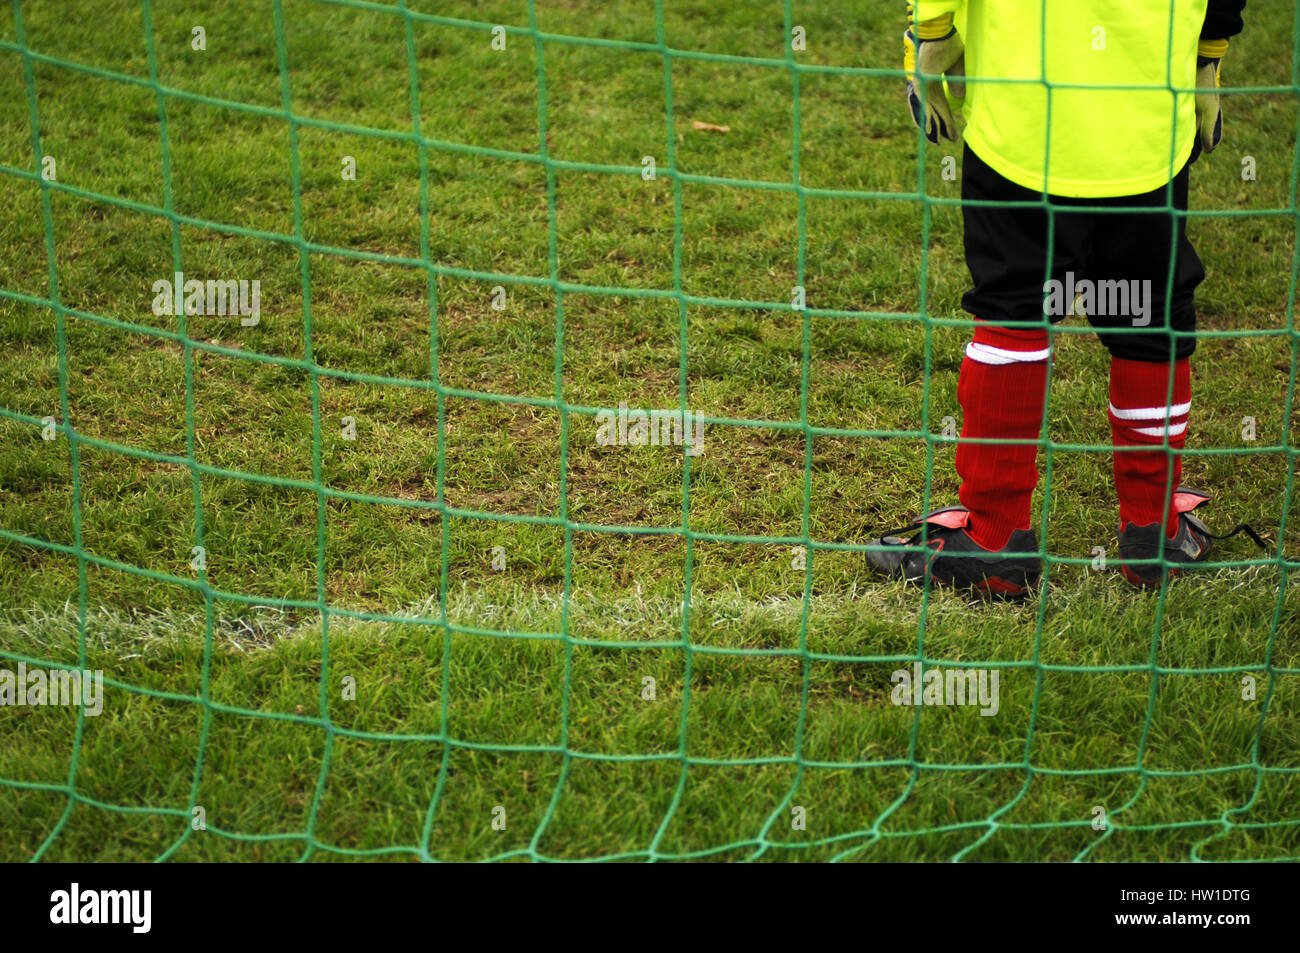 Goalkeeper, Torwart - Stock Image